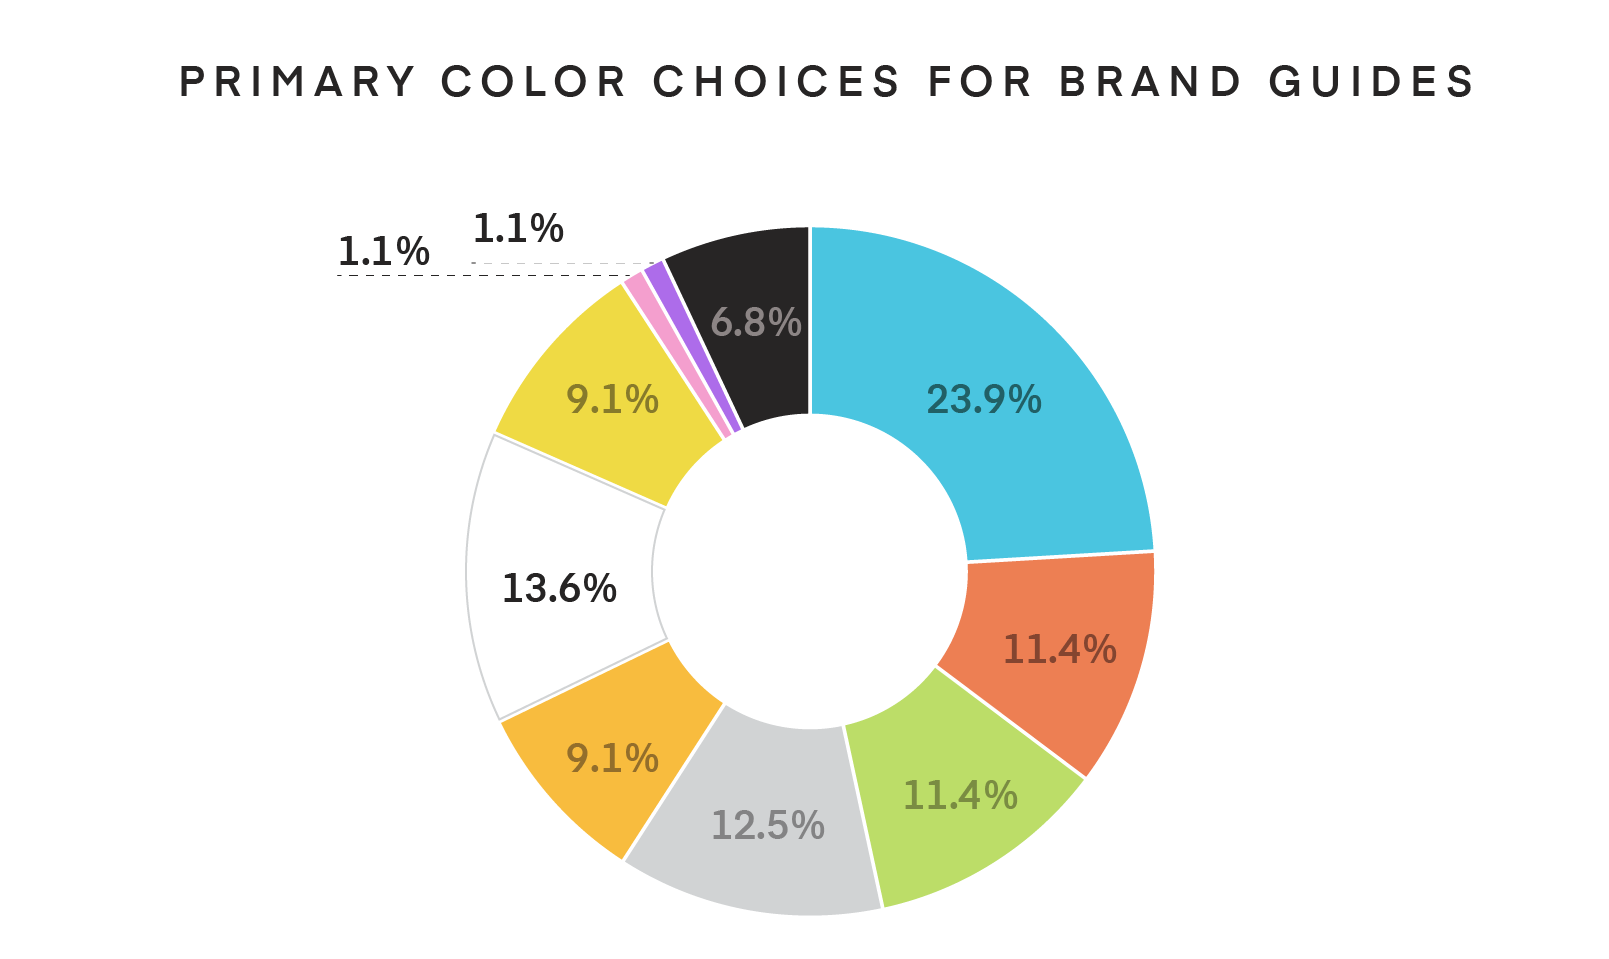 Pie chart of most popular company colors